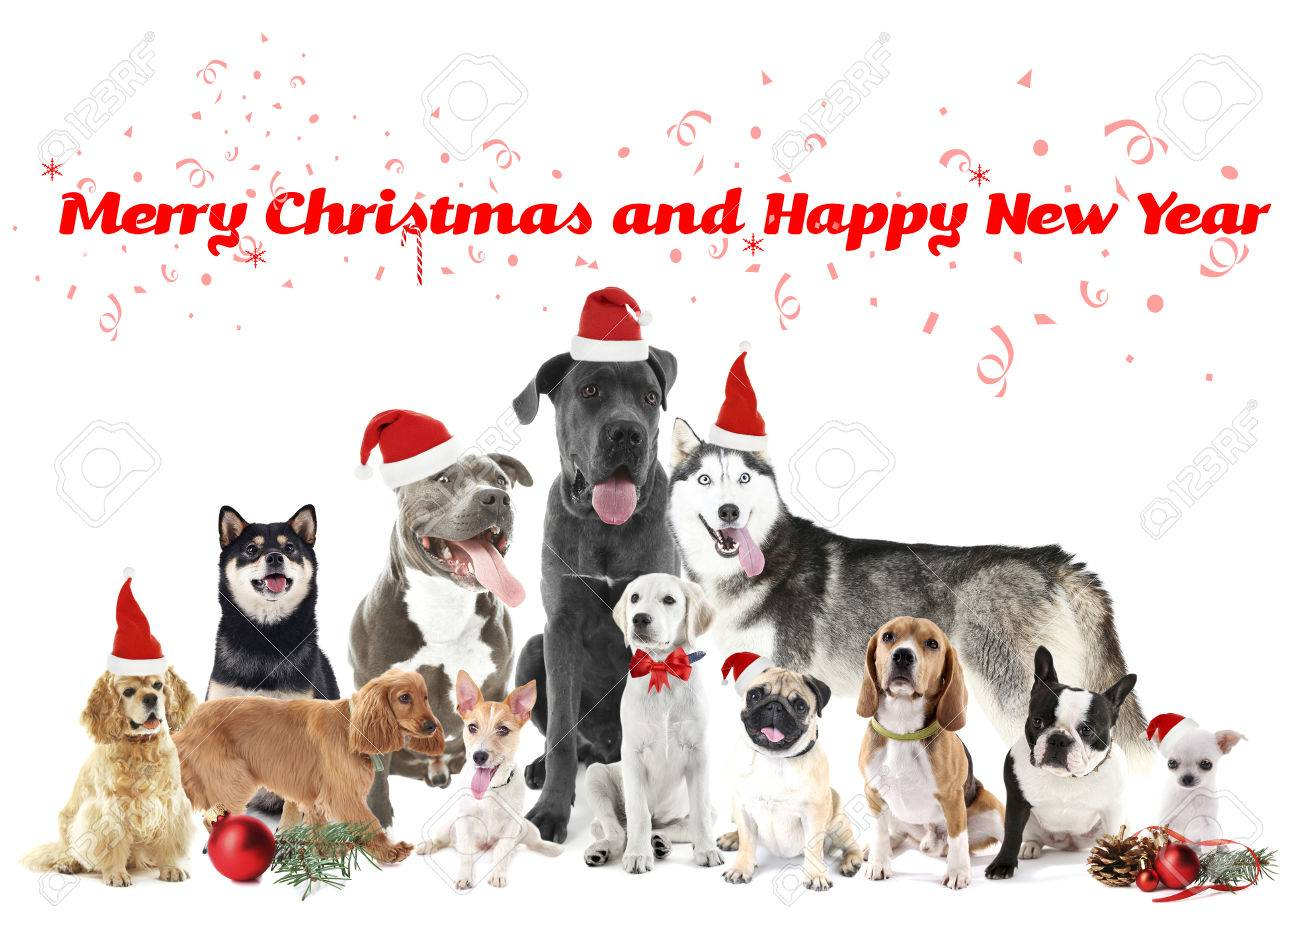 Funny Christmas Dogs Merry Christmas And Happy News Year Stock